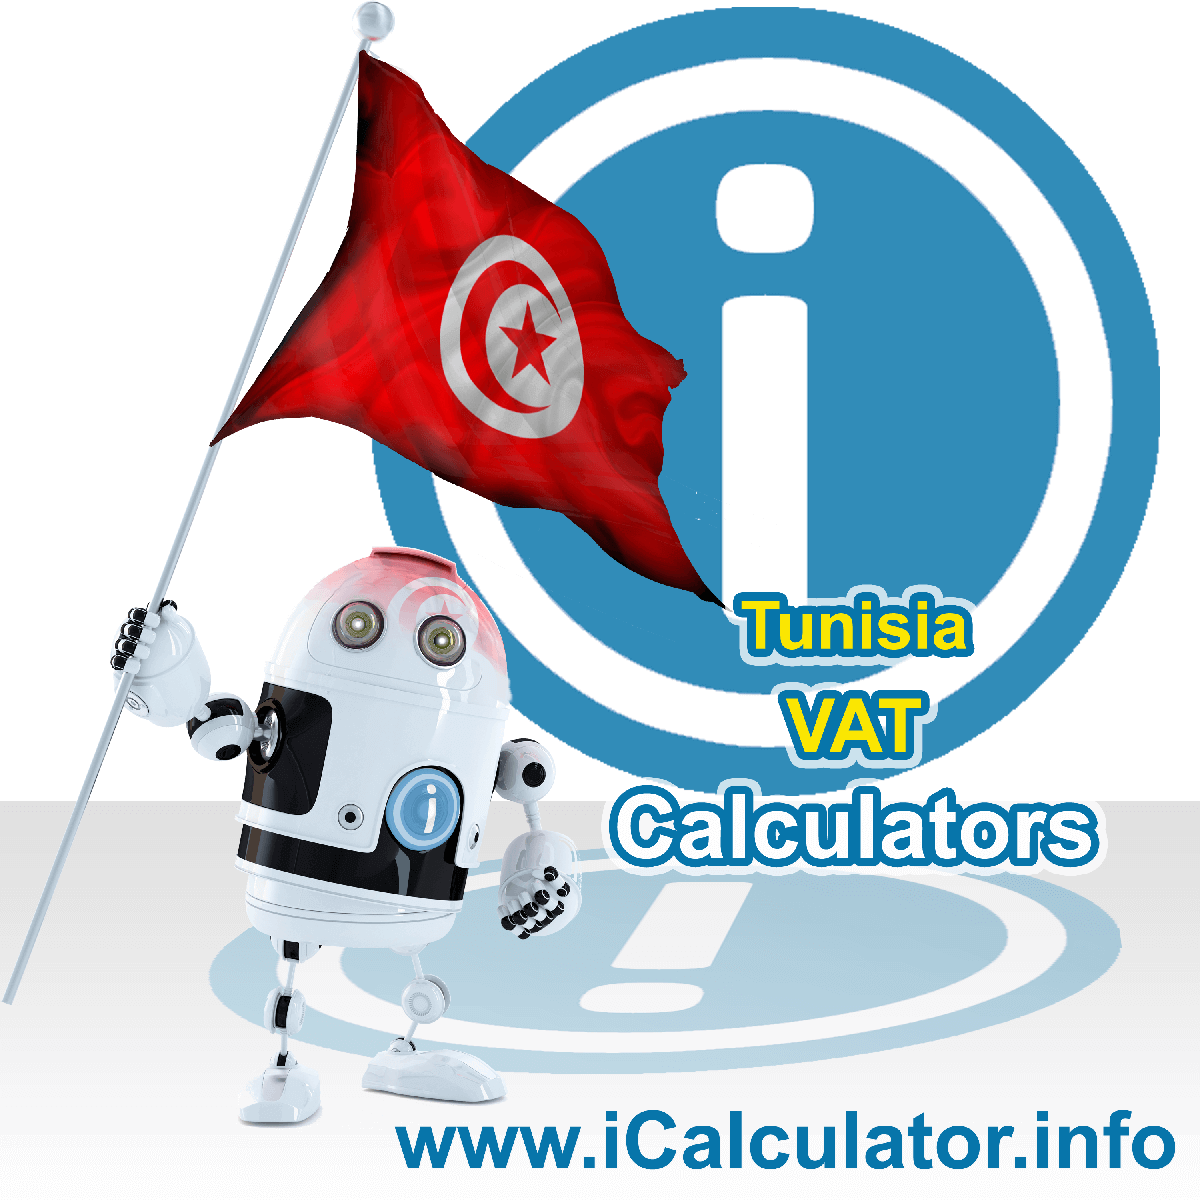 Tunisia VAT Calculator. This image shows the Tunisia flag and information relating to the VAT formula used for calculating Value Added Tax in Tunisia using the Tunisia VAT Calculator in 2020